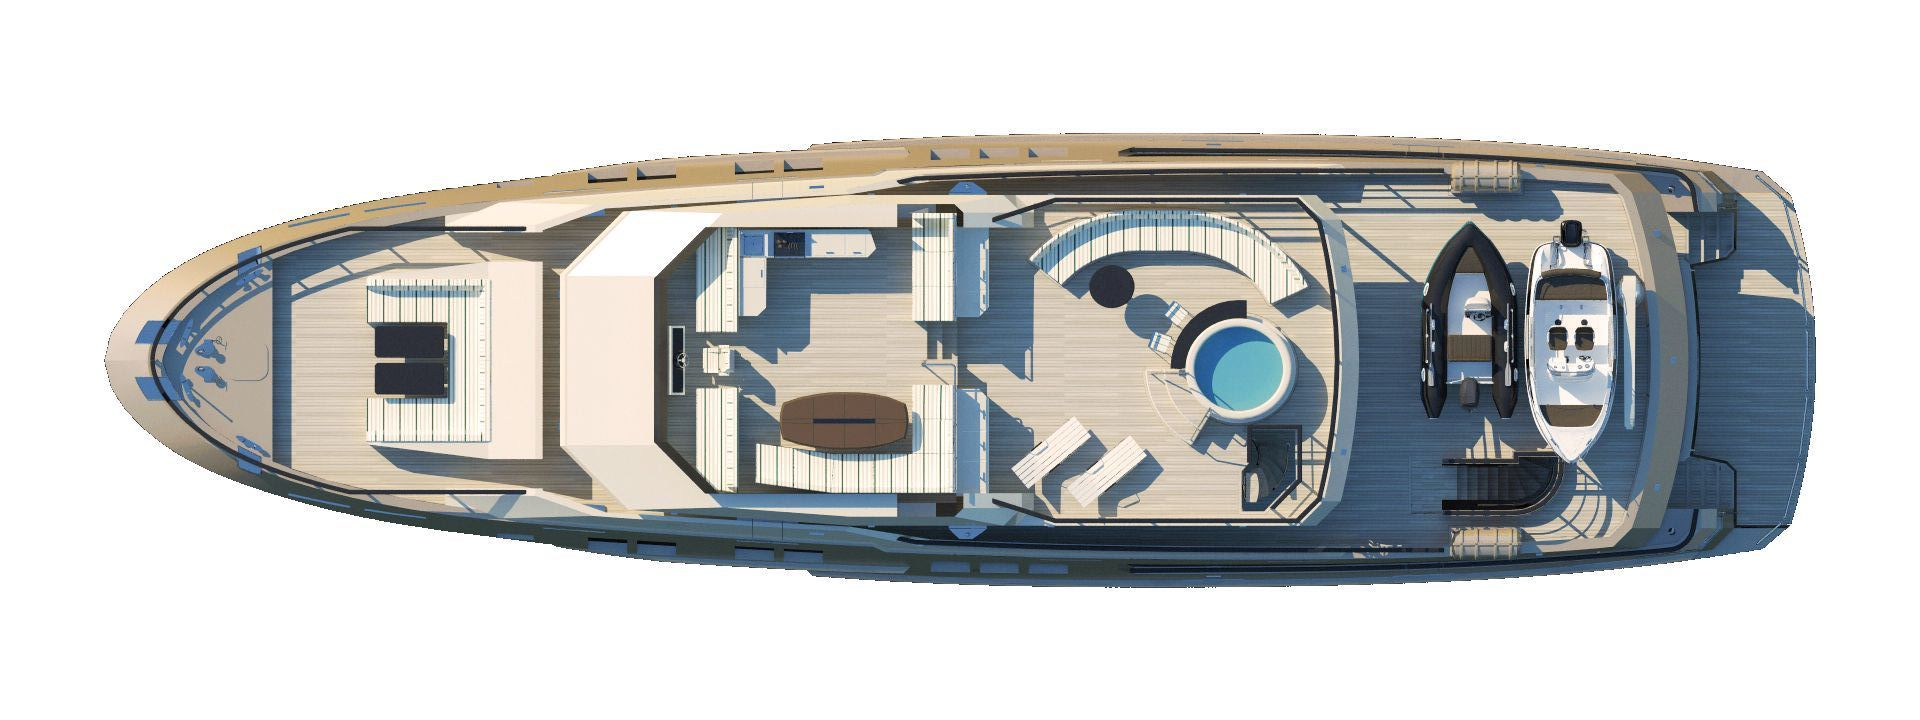 Bering 115 New Expedition Yacht